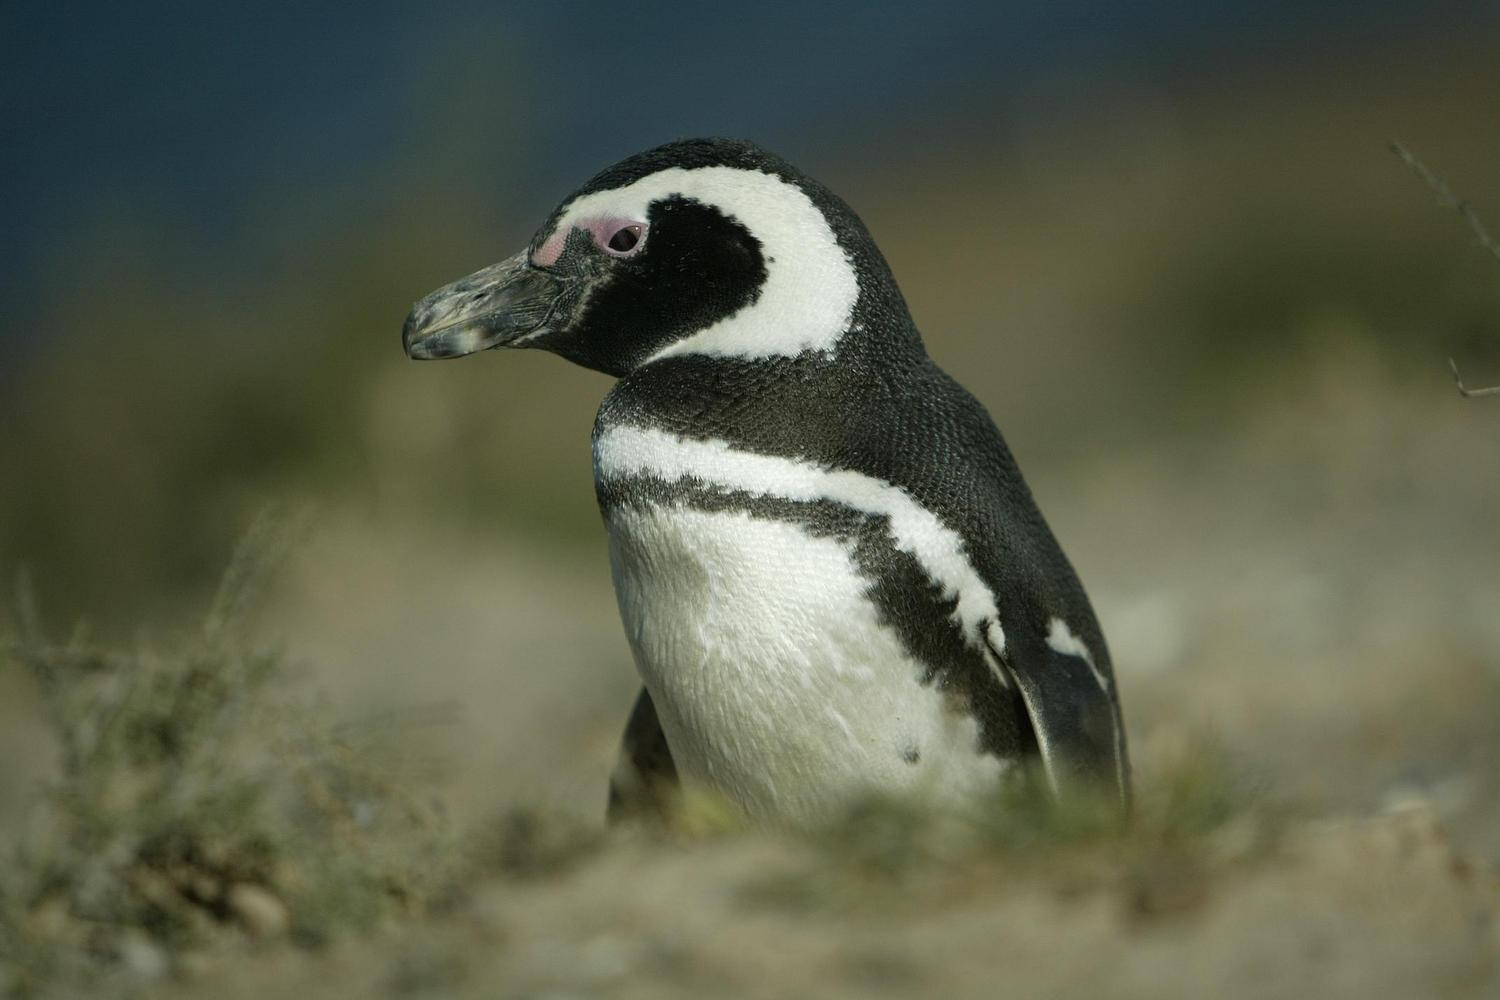 Punta Tombo is a great place for wildlife spotting